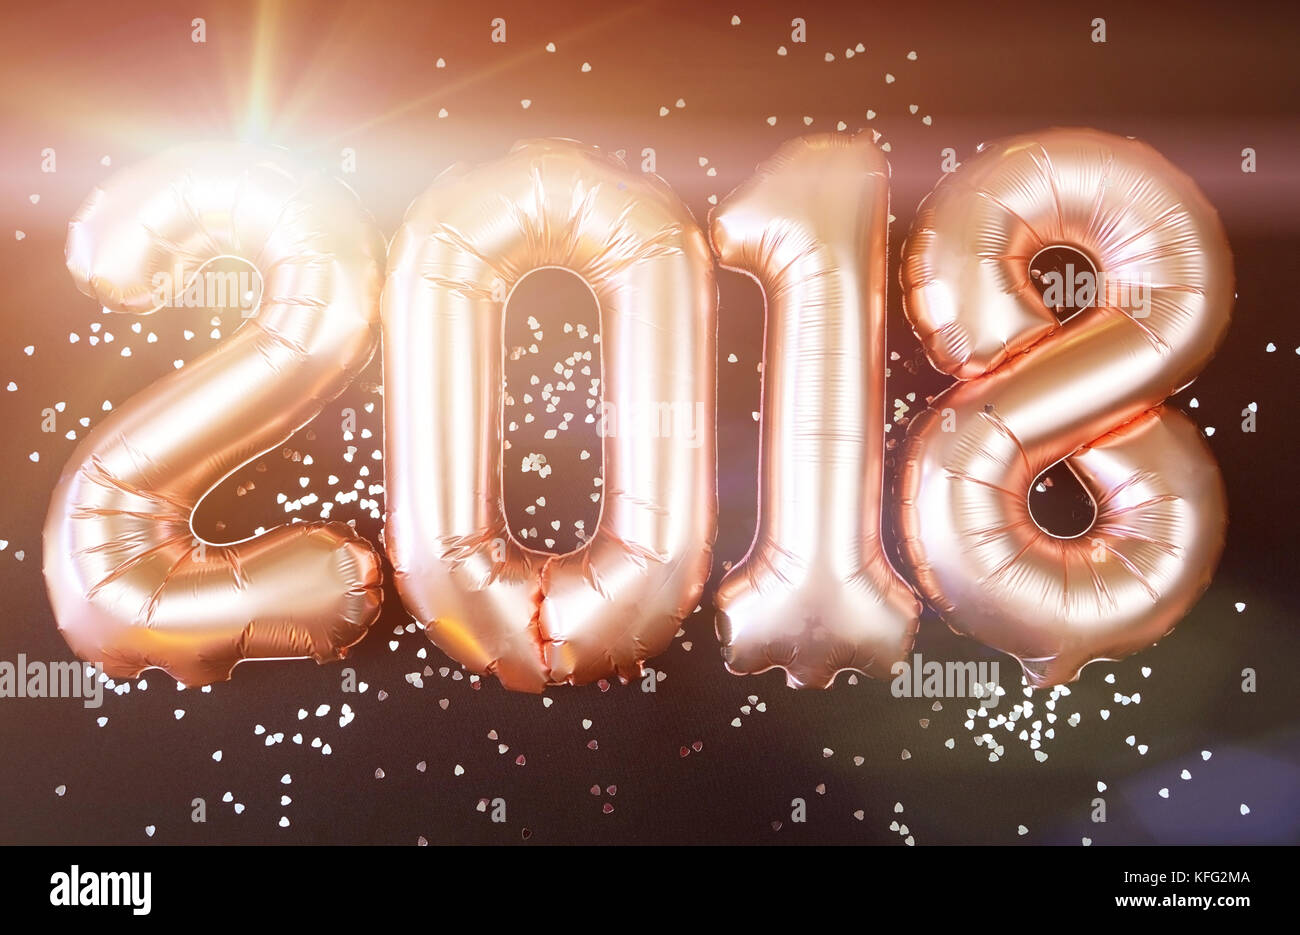 happy 2018 gold new year balloons with glitter stars on black background with lens flare